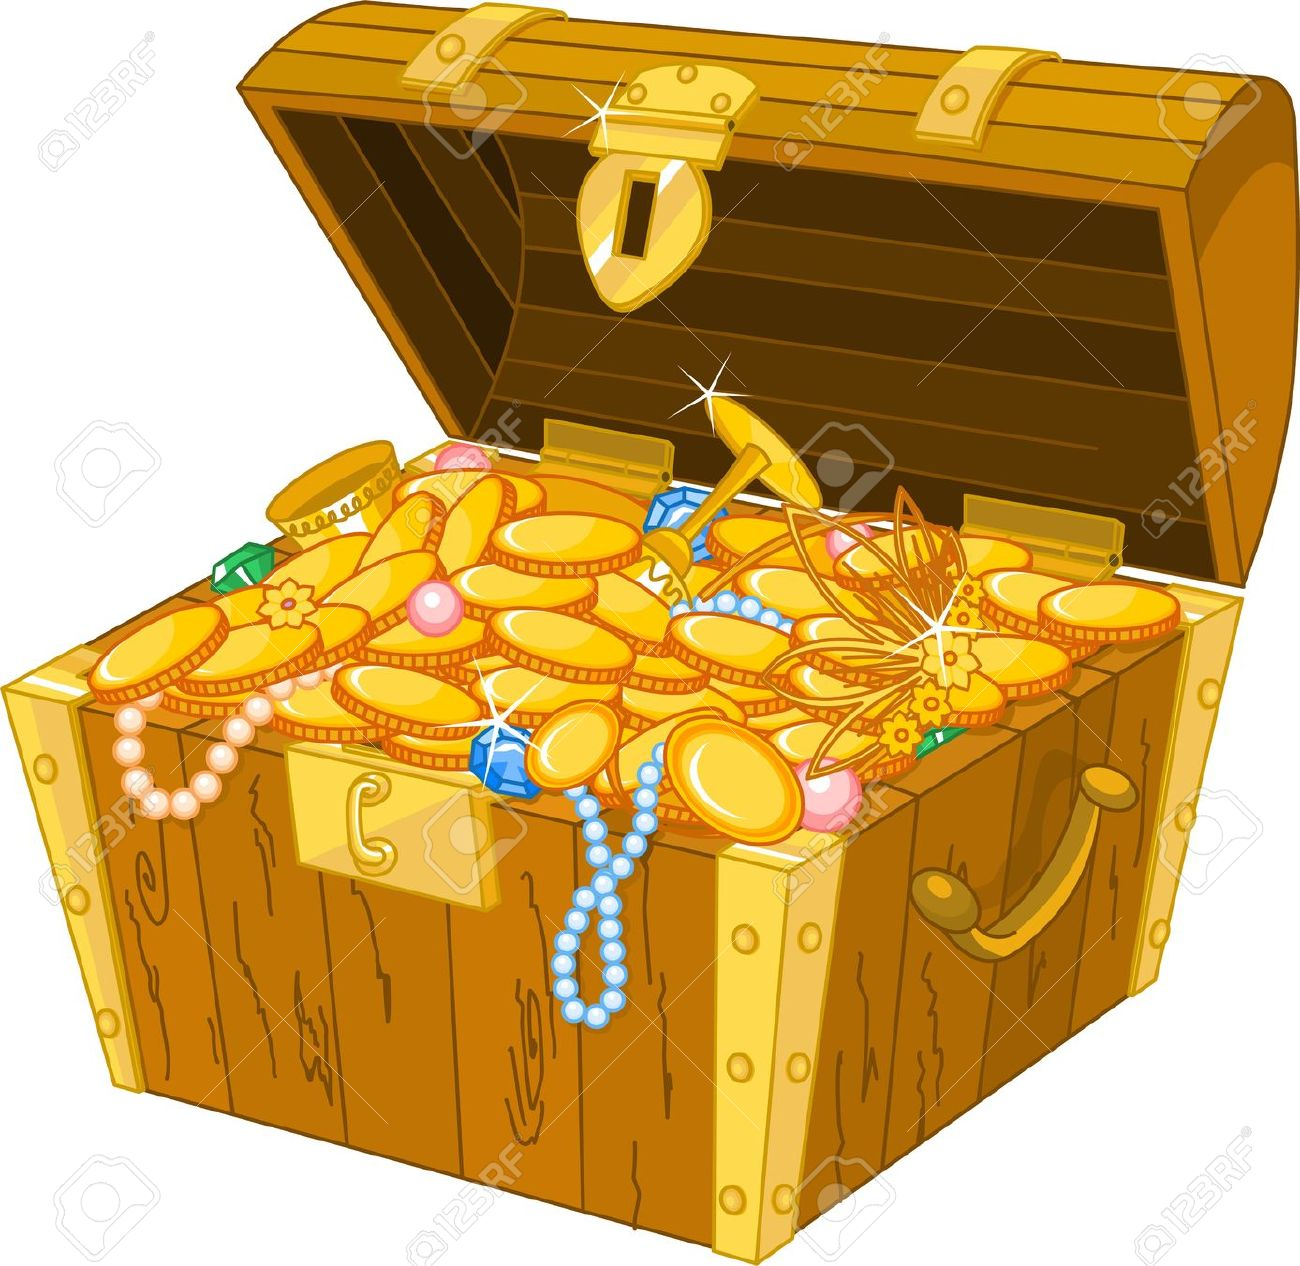 Treasure clipart #11, Download drawings